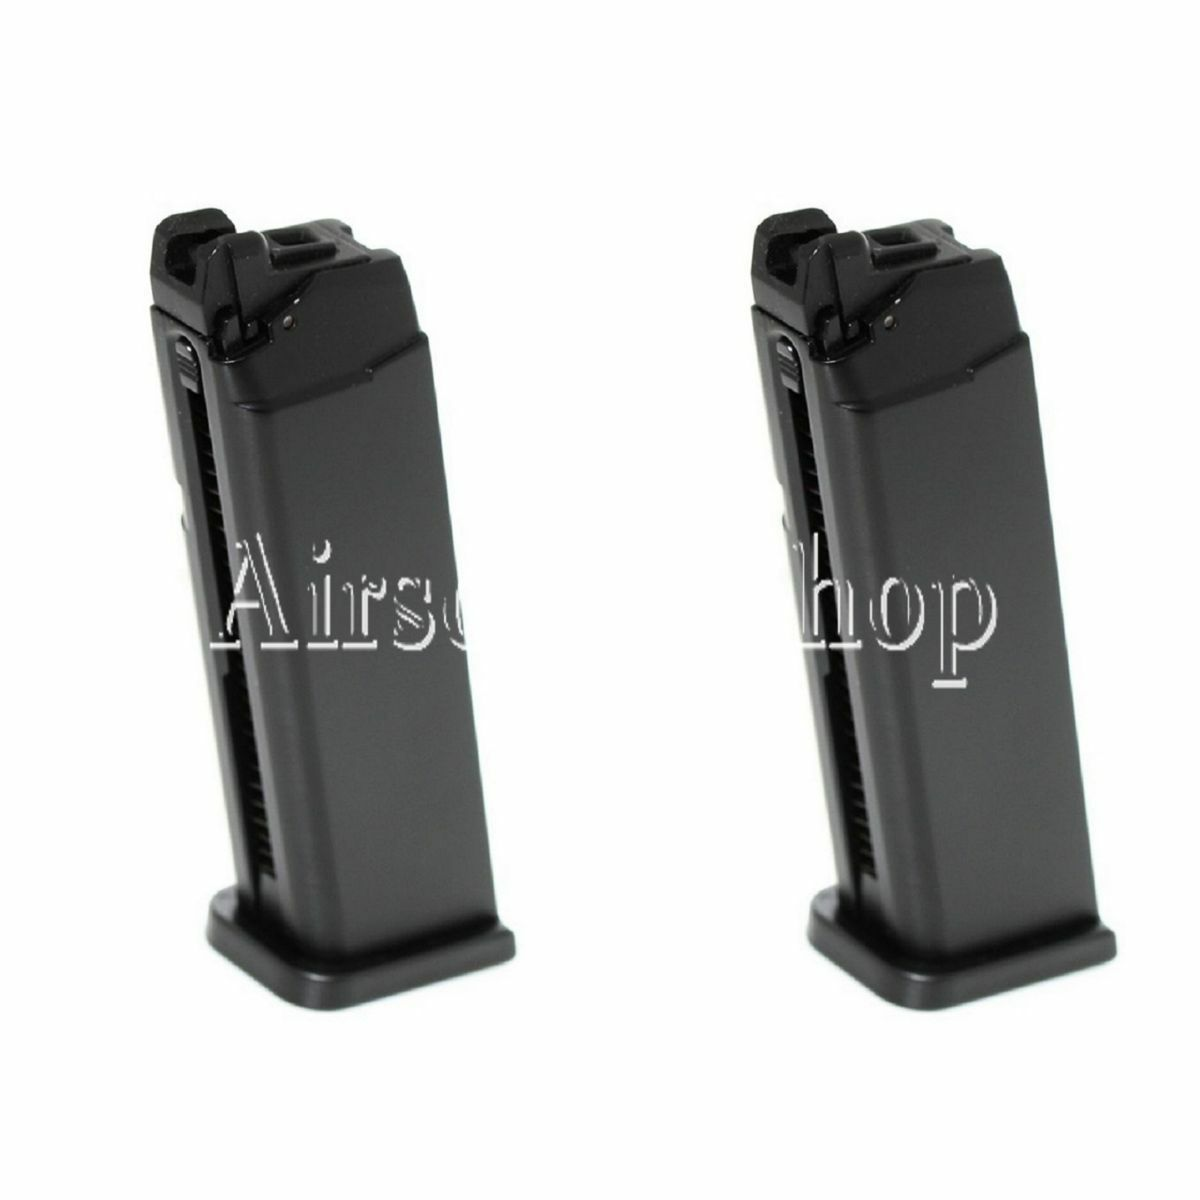 Airsoft APS 2pcs 23rd Top Gas Turbo Magazine for Marui APS DRAGONFLY D-MOD GBB